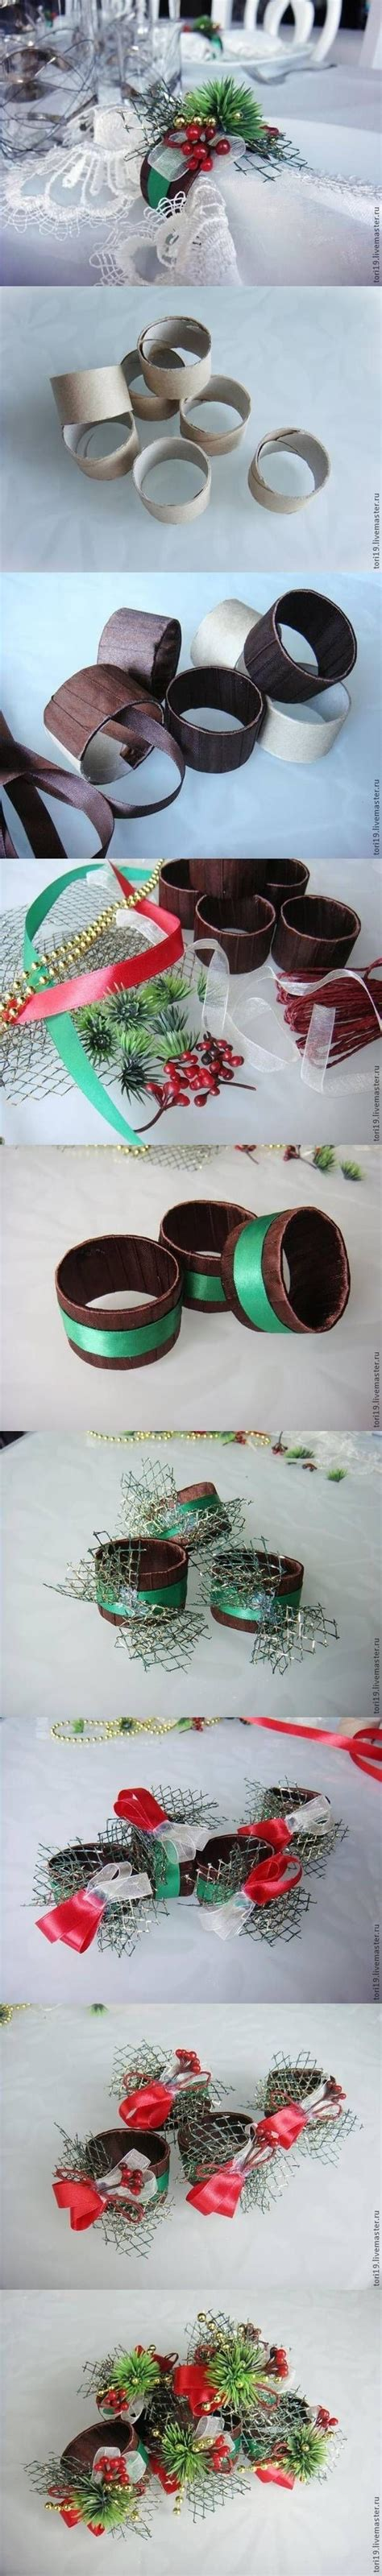 How To Make Paper Napkin Rings - how to make toilet paper napkin rings pictures photos